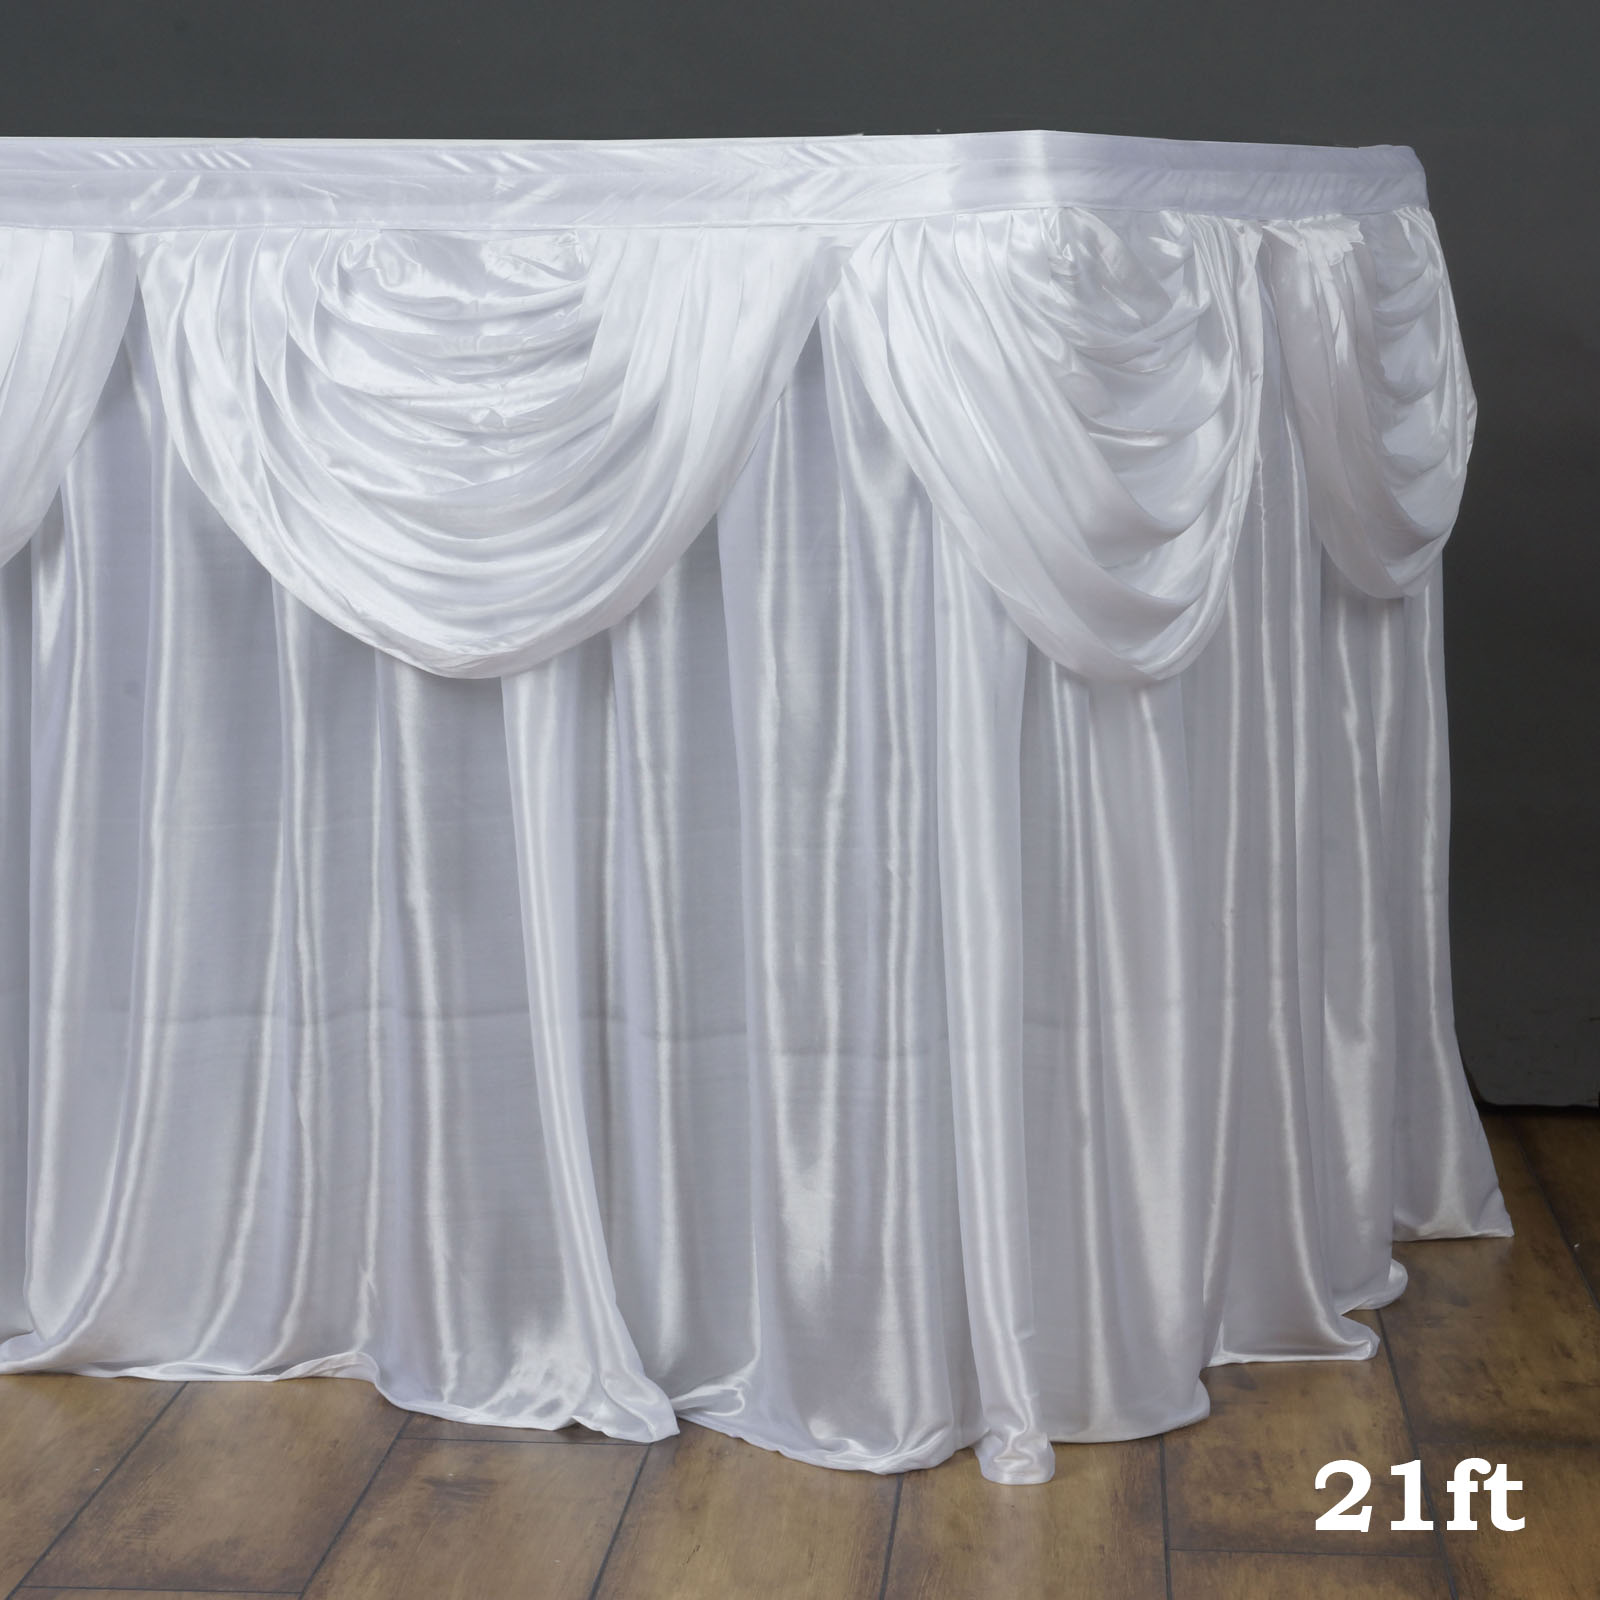 Efavormart Satin Double Drape Table Skirt Table Covers For Rectangle Or Round Tables 21Ft